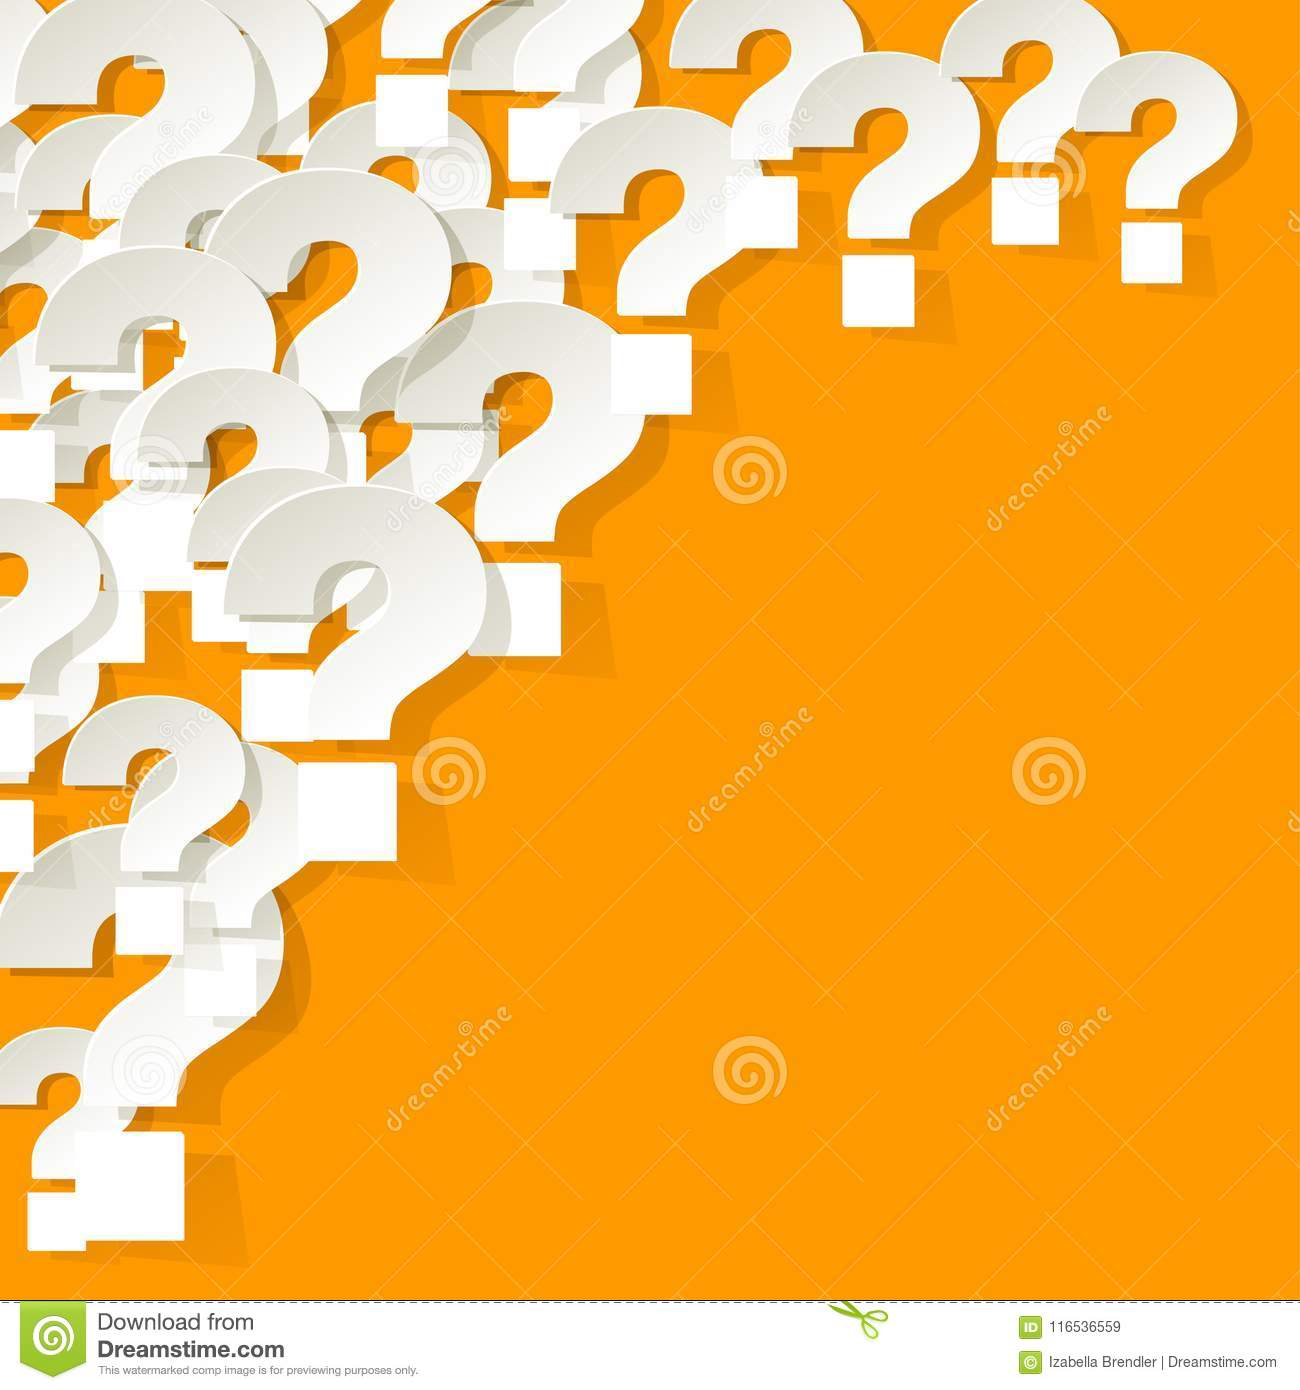 Question Marks white in the corner on a yellow background